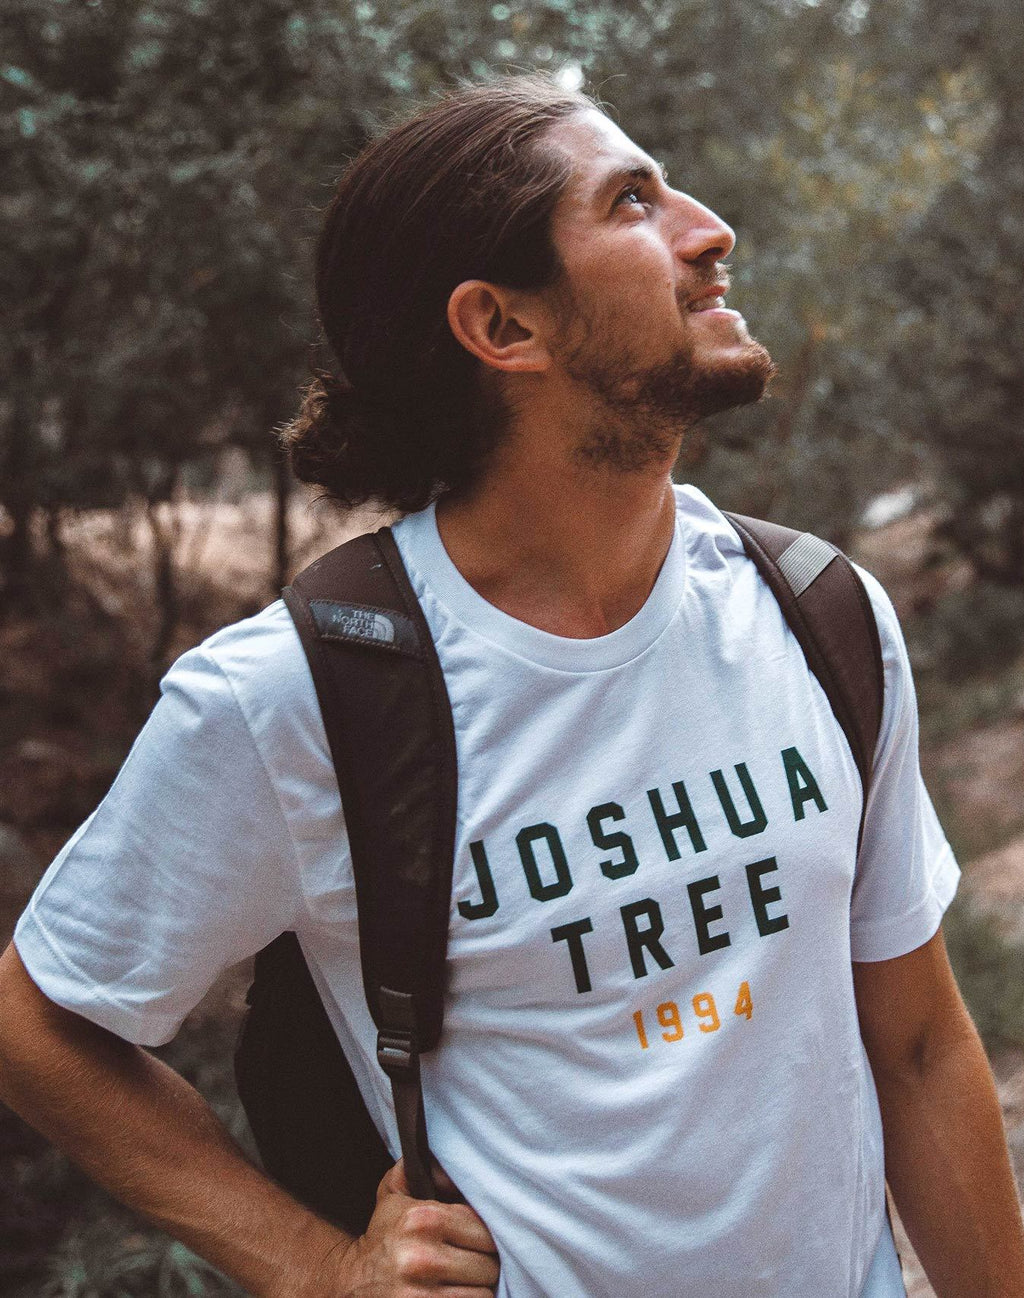 The Parks Joshua Tree Men's Tee - The Parks Apparel